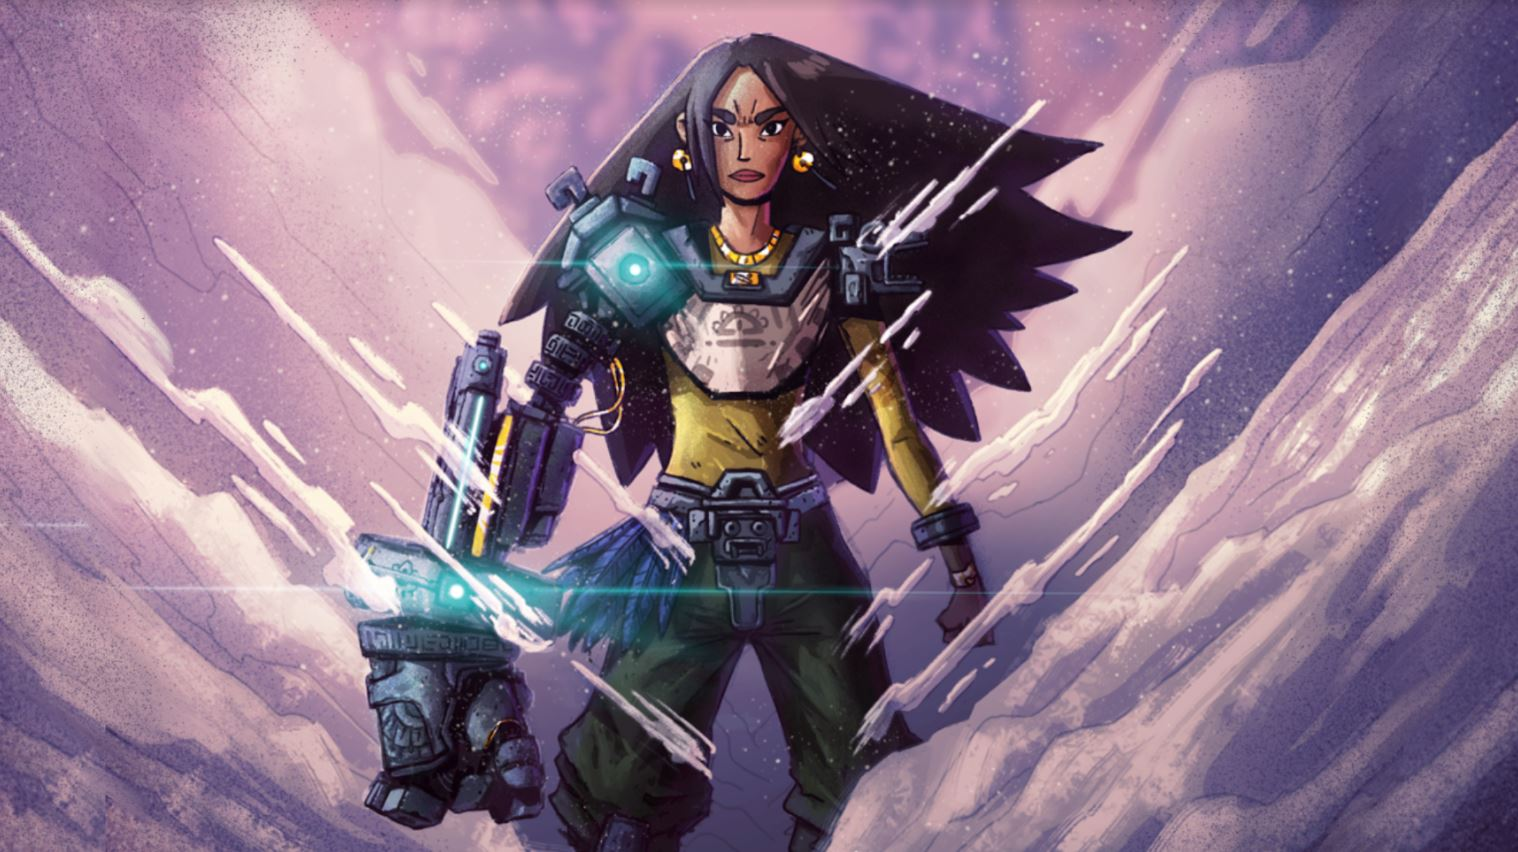 aztech-forgotten-gods-is-a-futuristic-take-on-mythology-coming-to-ps5-and-ps4-this-fall